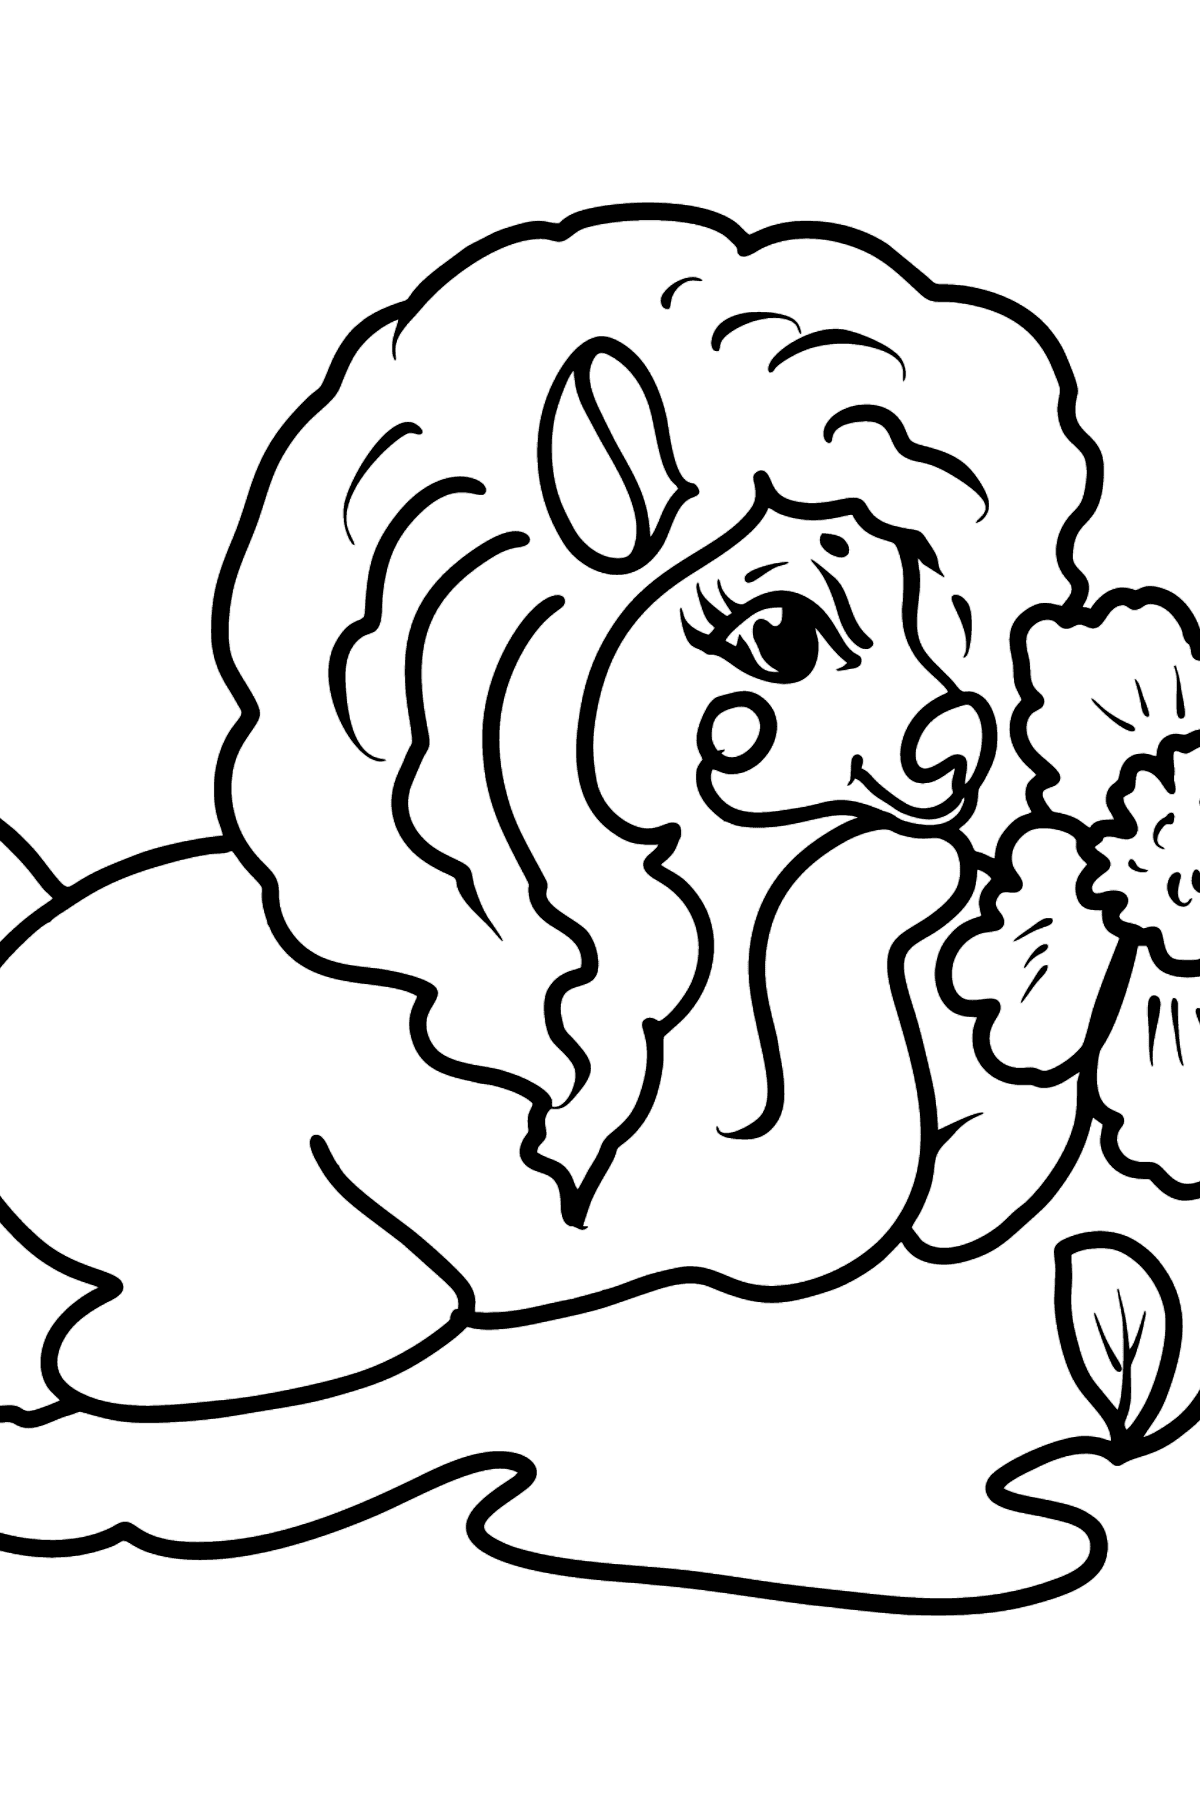 Pony is Resting coloring page - Coloring Pages for Kids